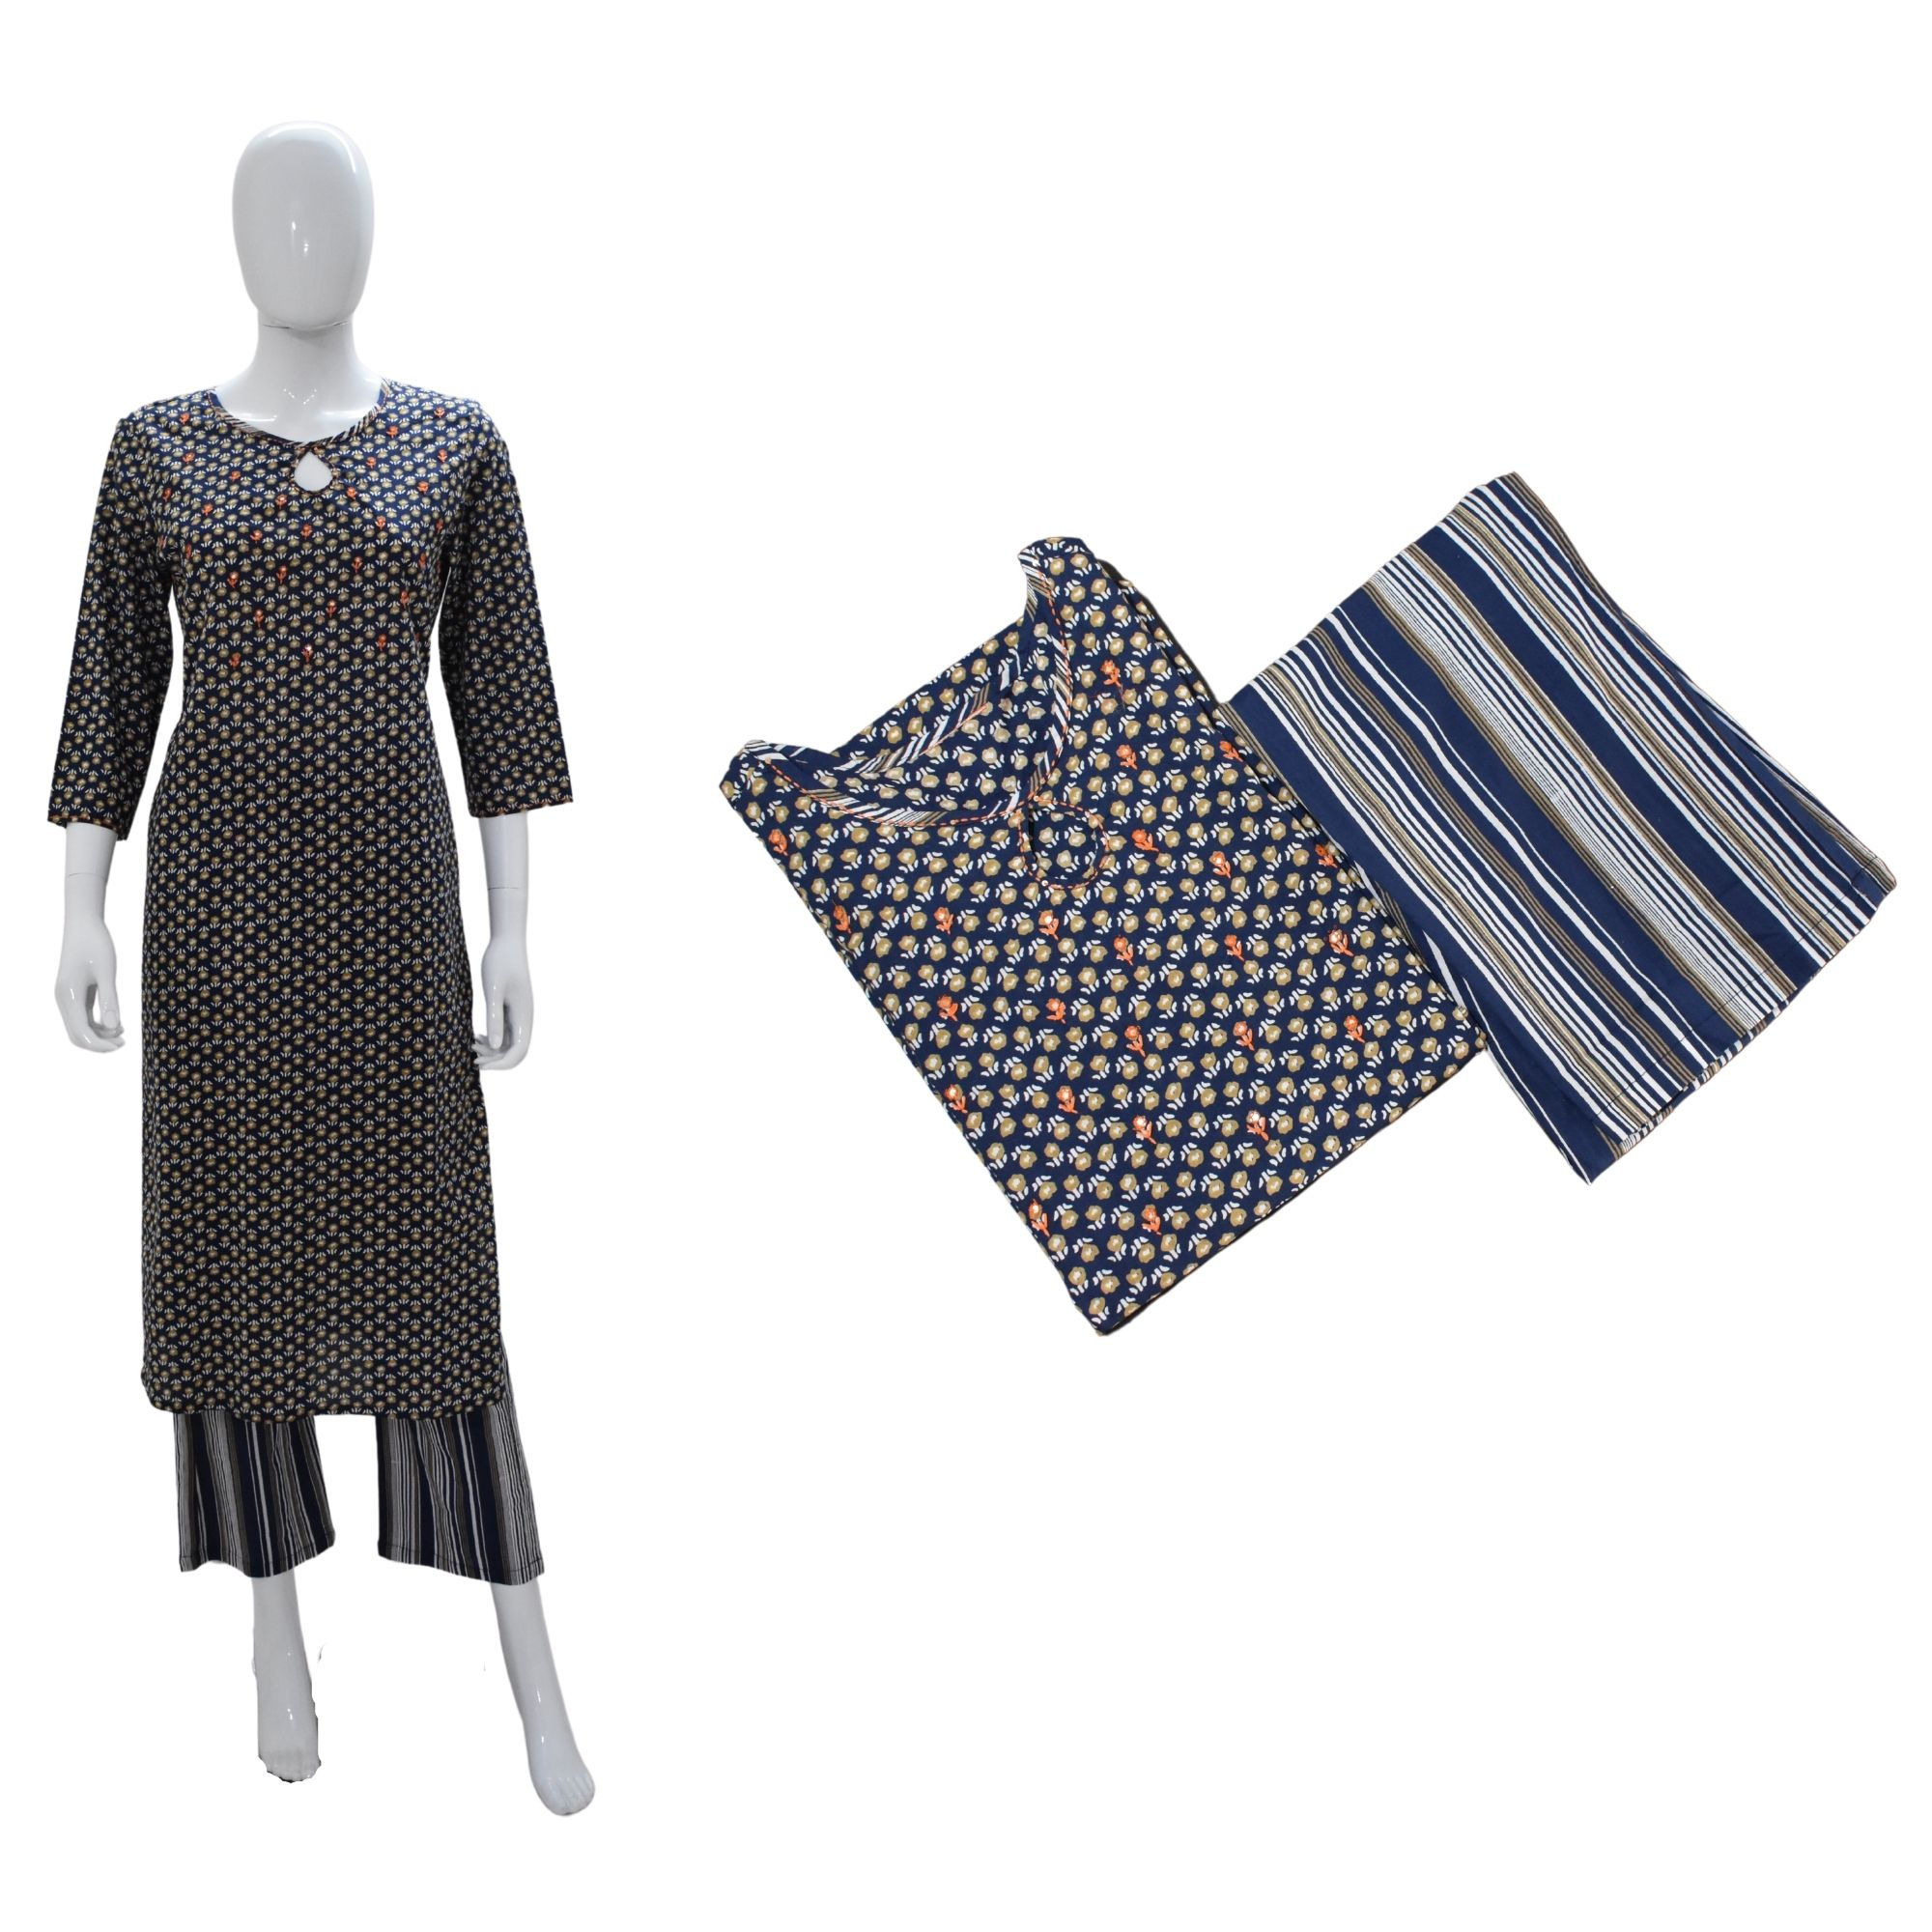 FLORAL STRIPED KURTA LOWER SET- NAVY BLUE